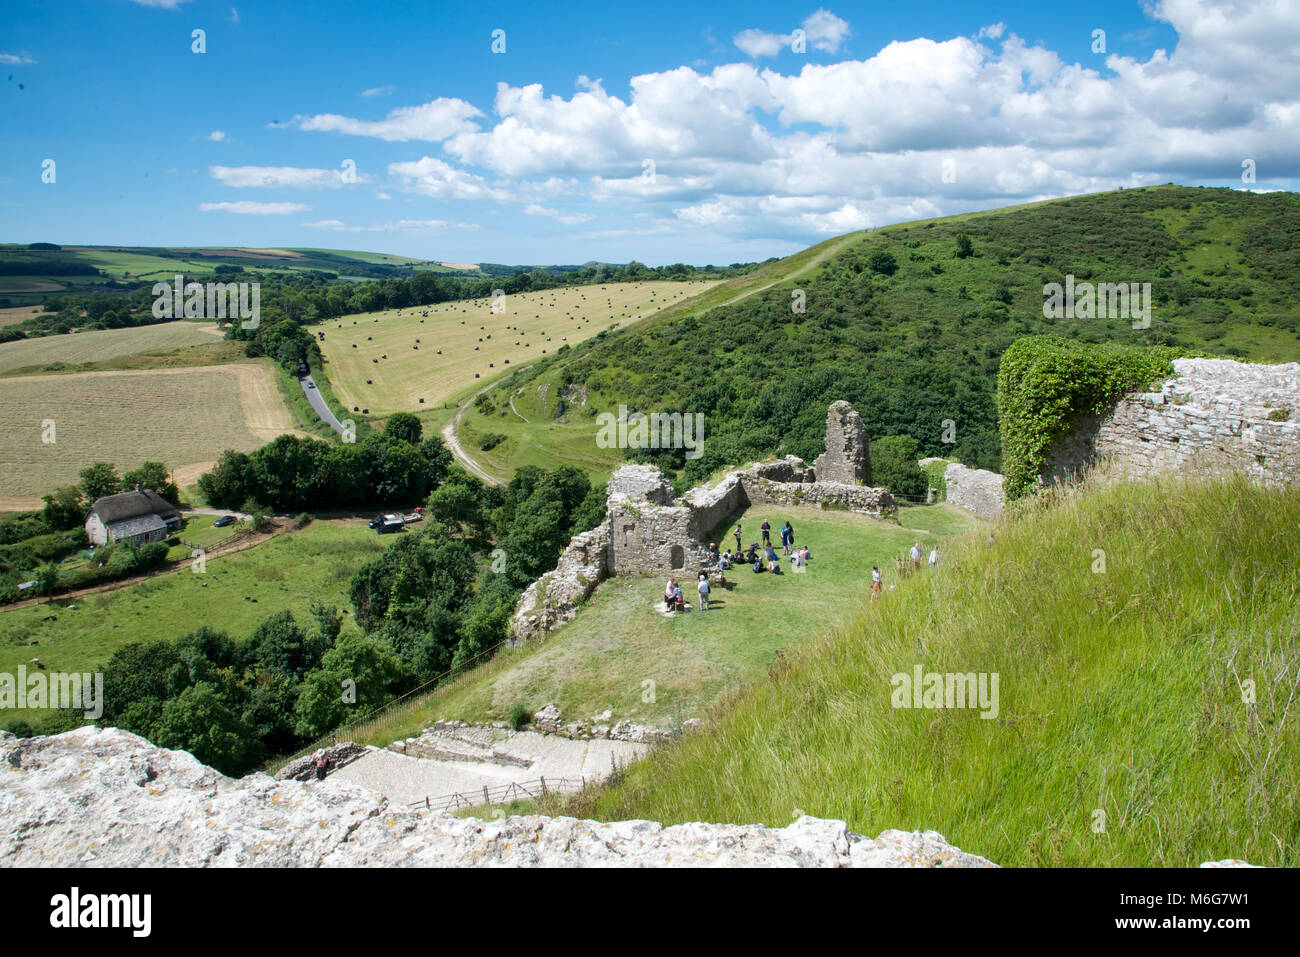 A view over the Purbeck Hills from Corfe Castle, Dorset, England - Stock Image